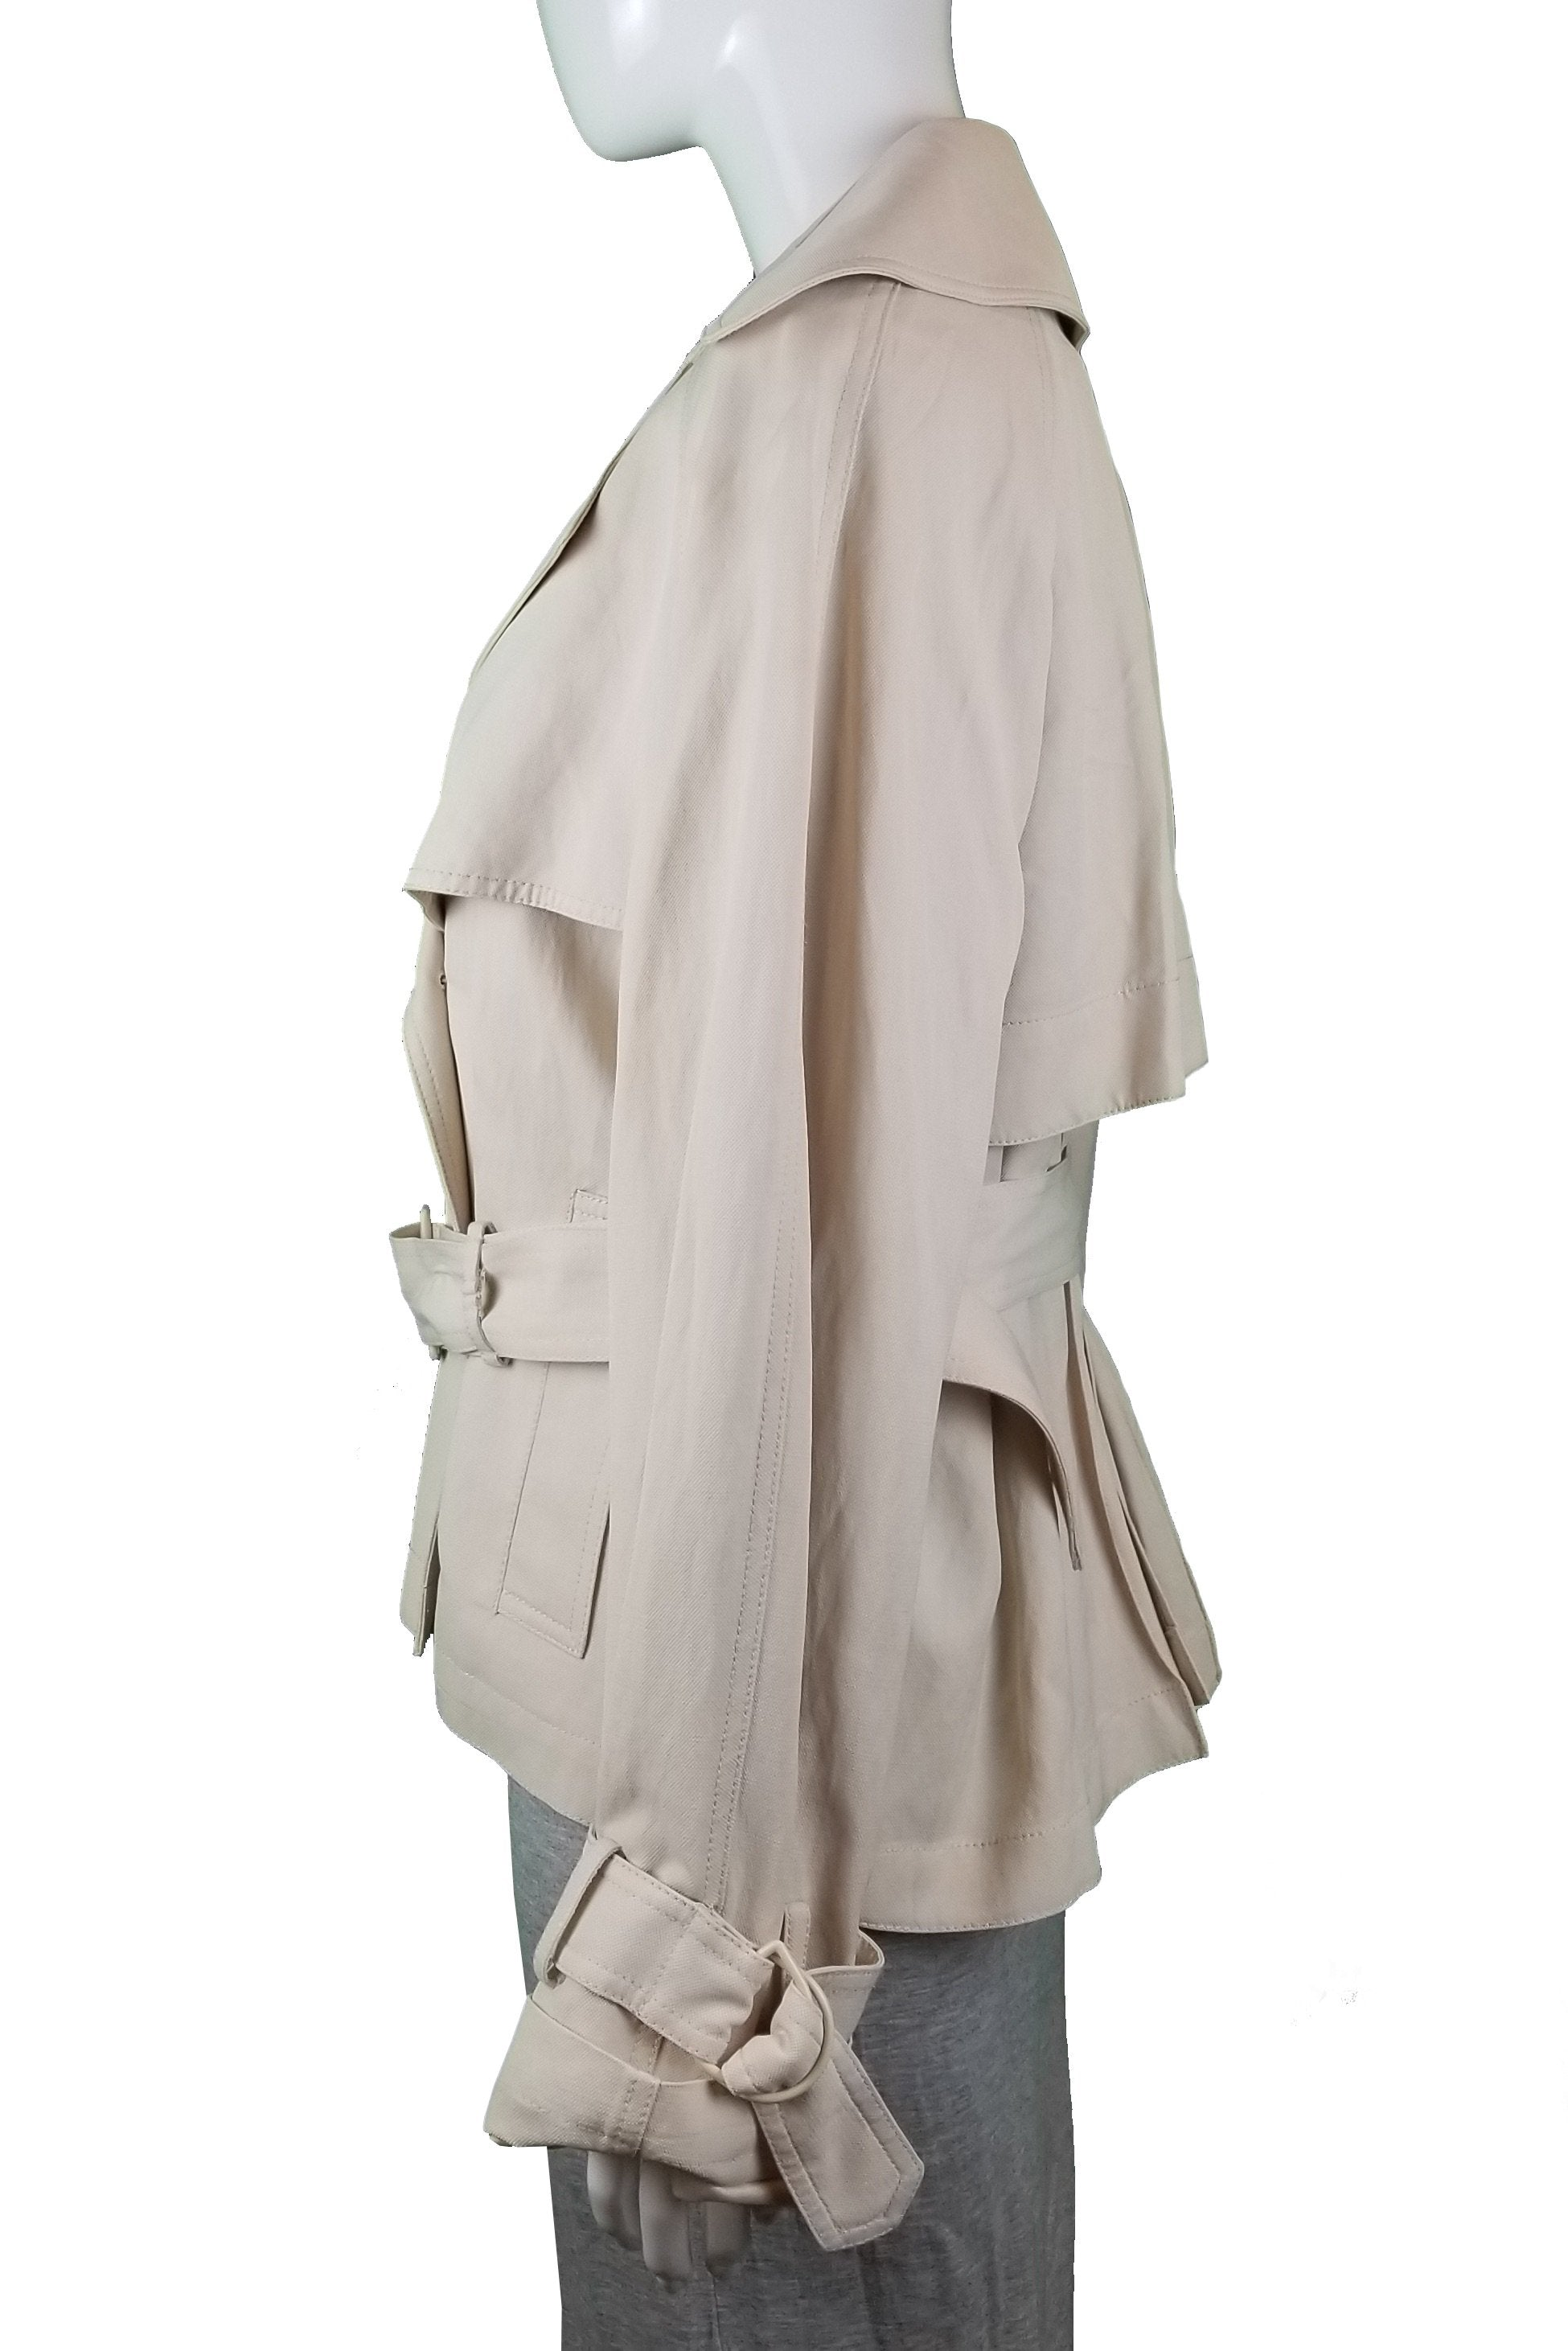 Vince Beige Fitted Jacket, Feel confident in this flattering design with soft and drapey material. , White, 58% Viscose, 23% Linen, 19% Cotton, women's jacket, women's work jacket, women's work blazer